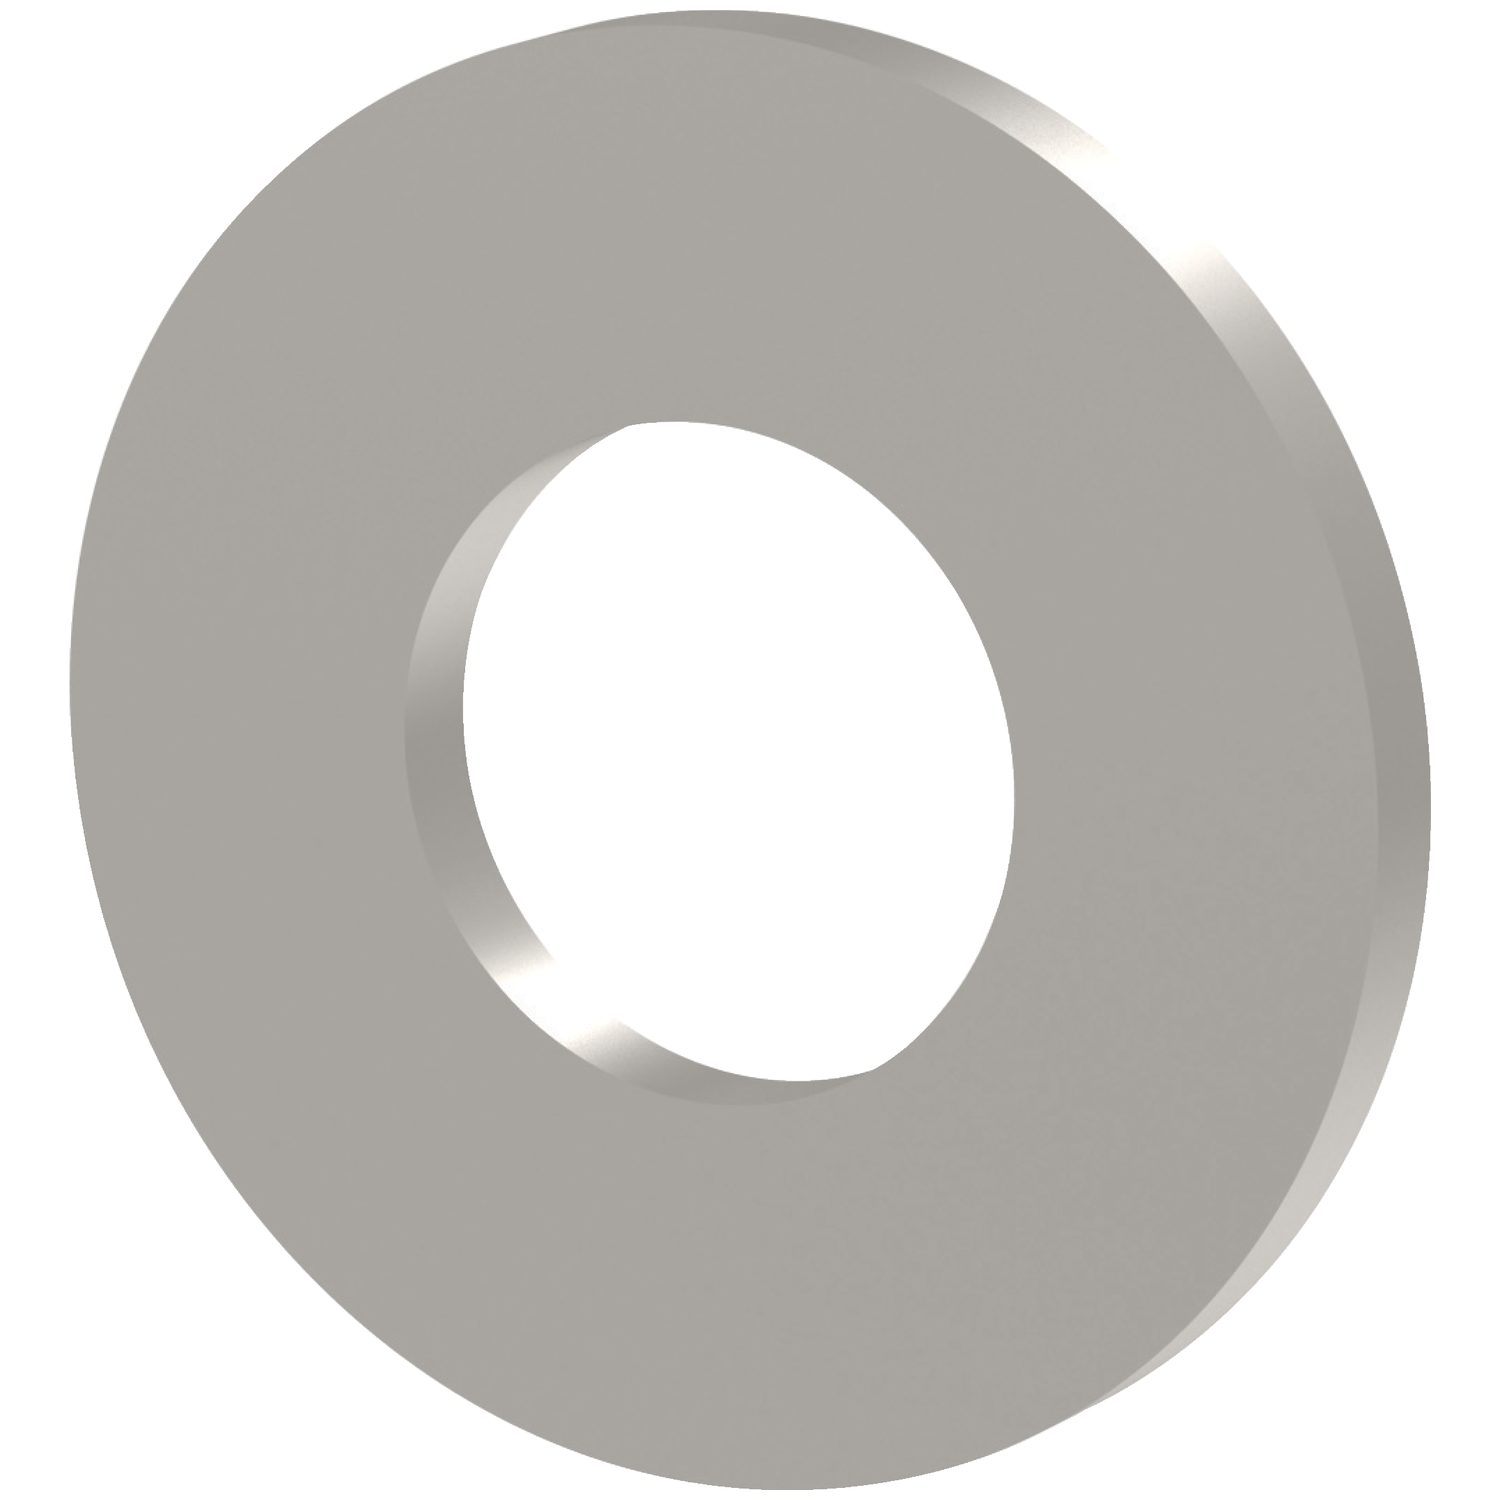 Shim Washers Shim washers in stainless steel. From 6mm o/d to 30mm. Heights from 0.1mm to 1mm.